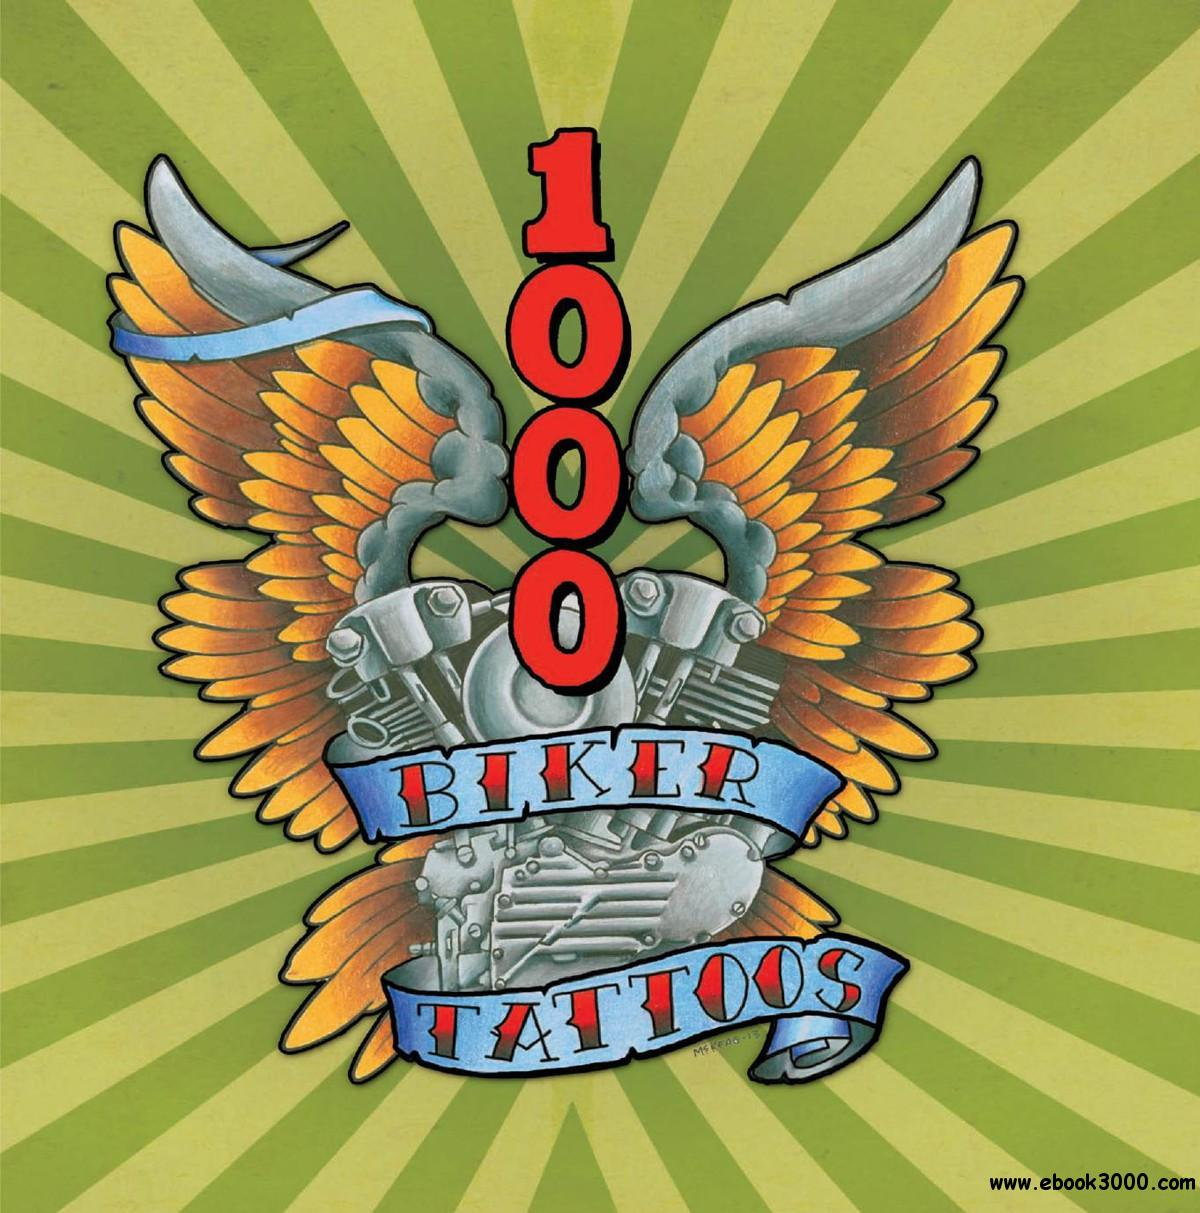 1000 Biker Tattoos free download